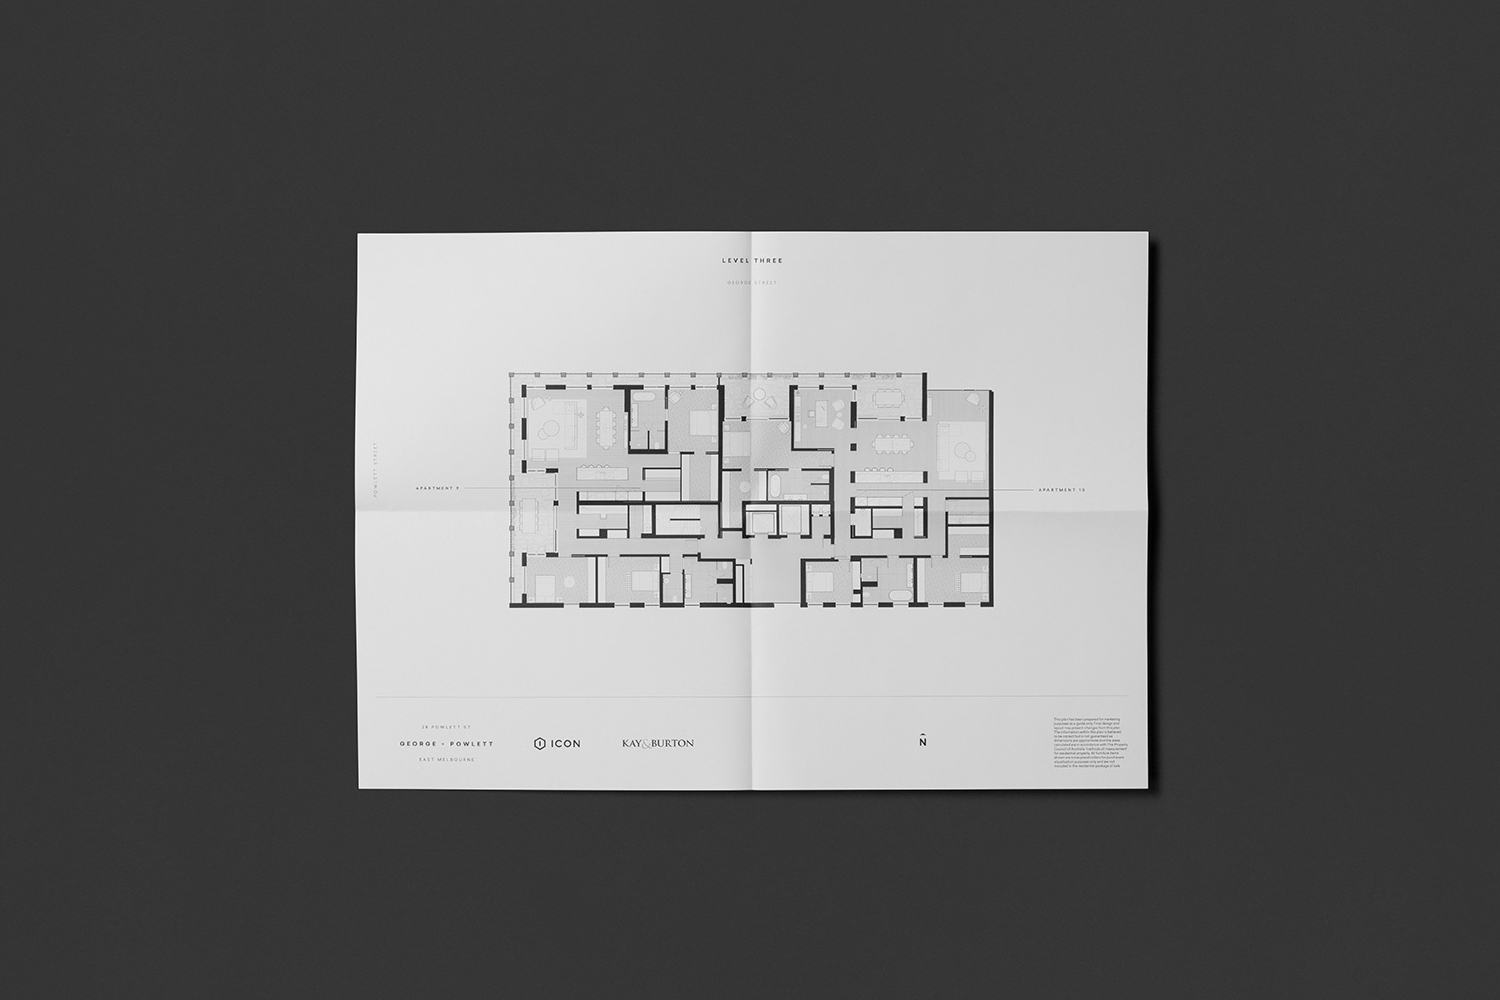 Floor plan by Studio Brave for East Melbourne apartments George + Powlett